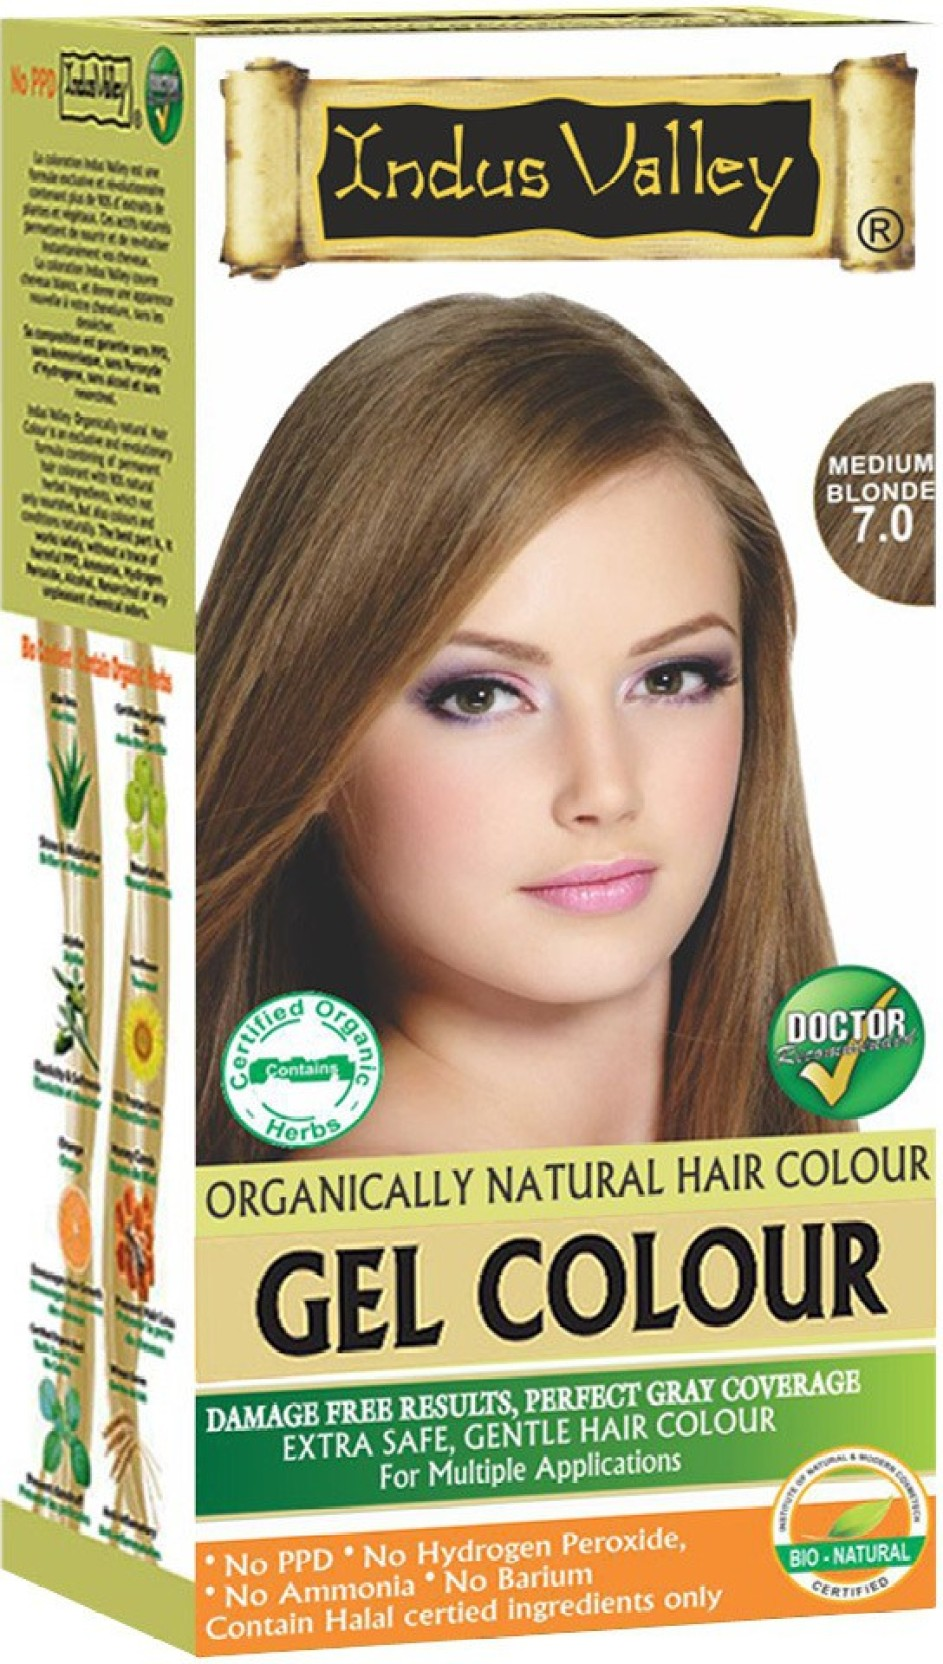 Indus Valley Organically Natural Hair Color Price In India Buy